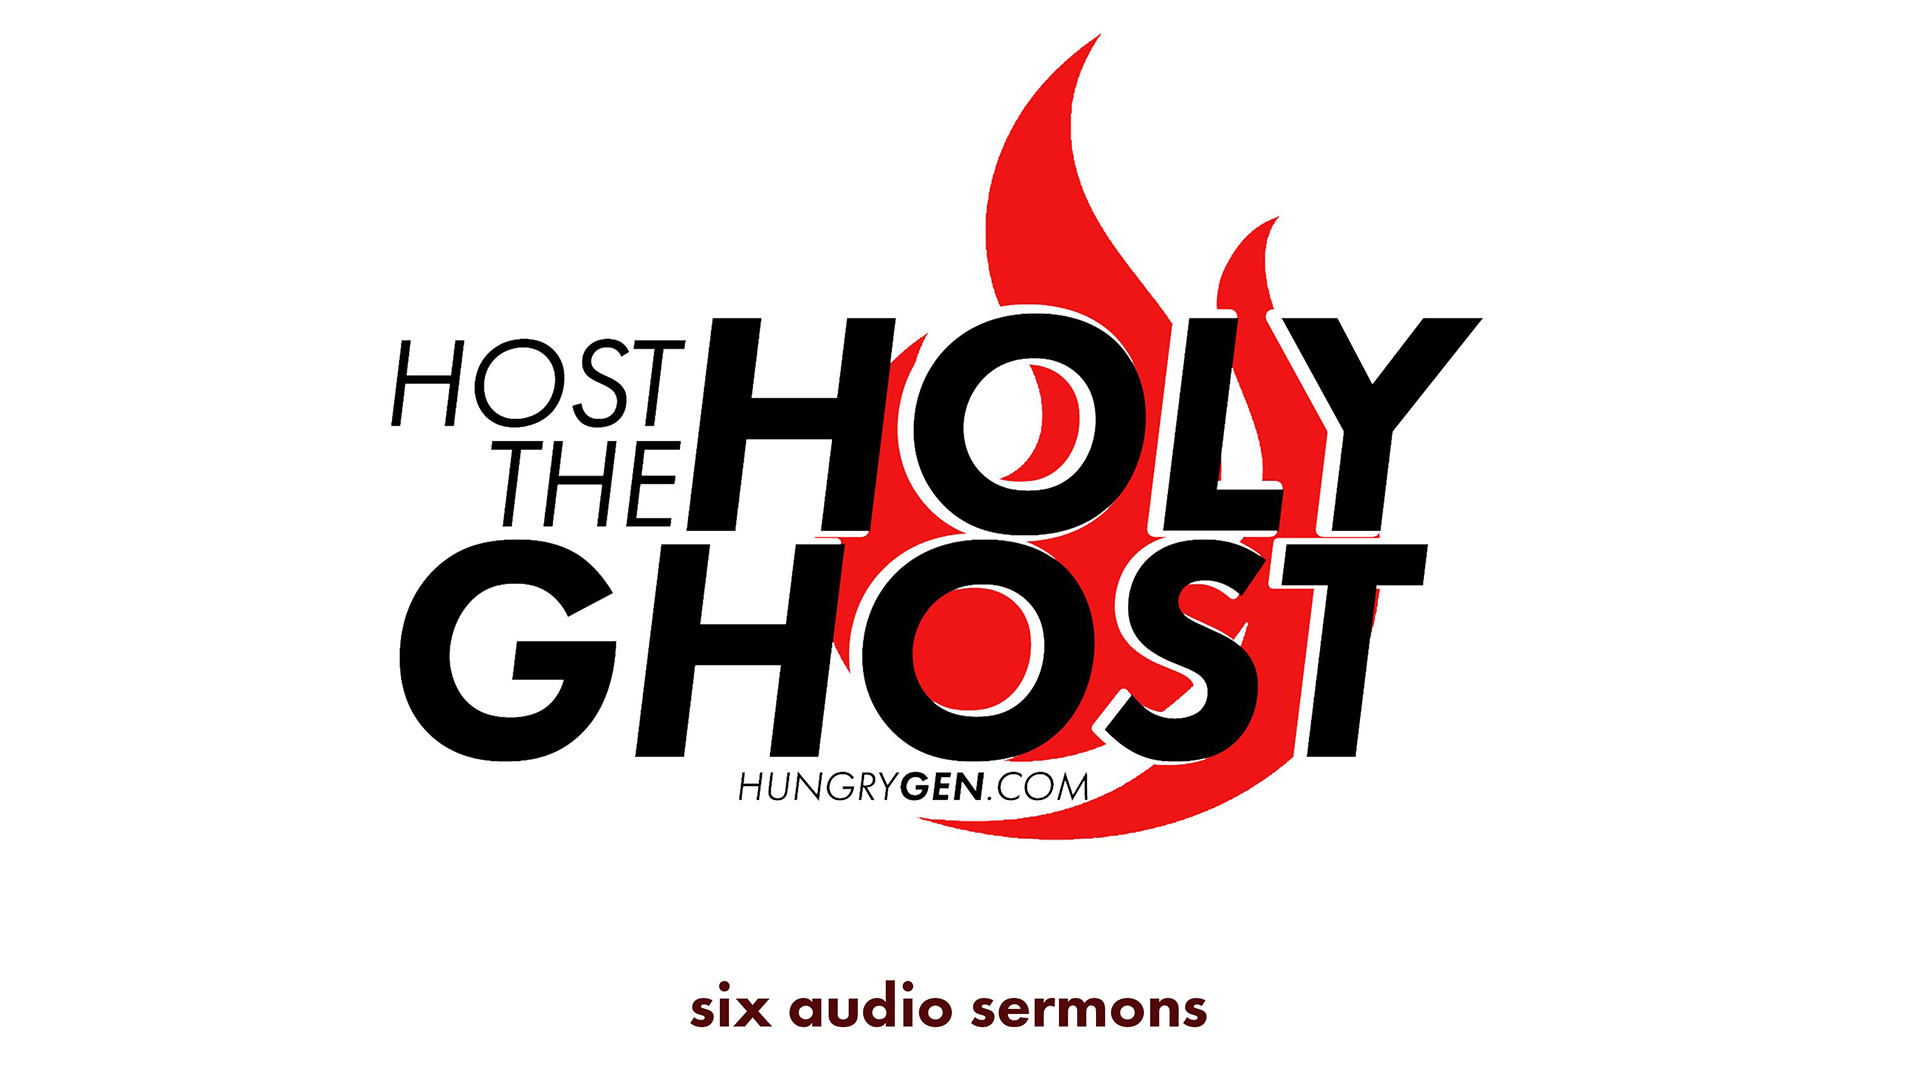 https://vladimirsavchuk.com/resources/host-the-holy-ghost-audio-series/